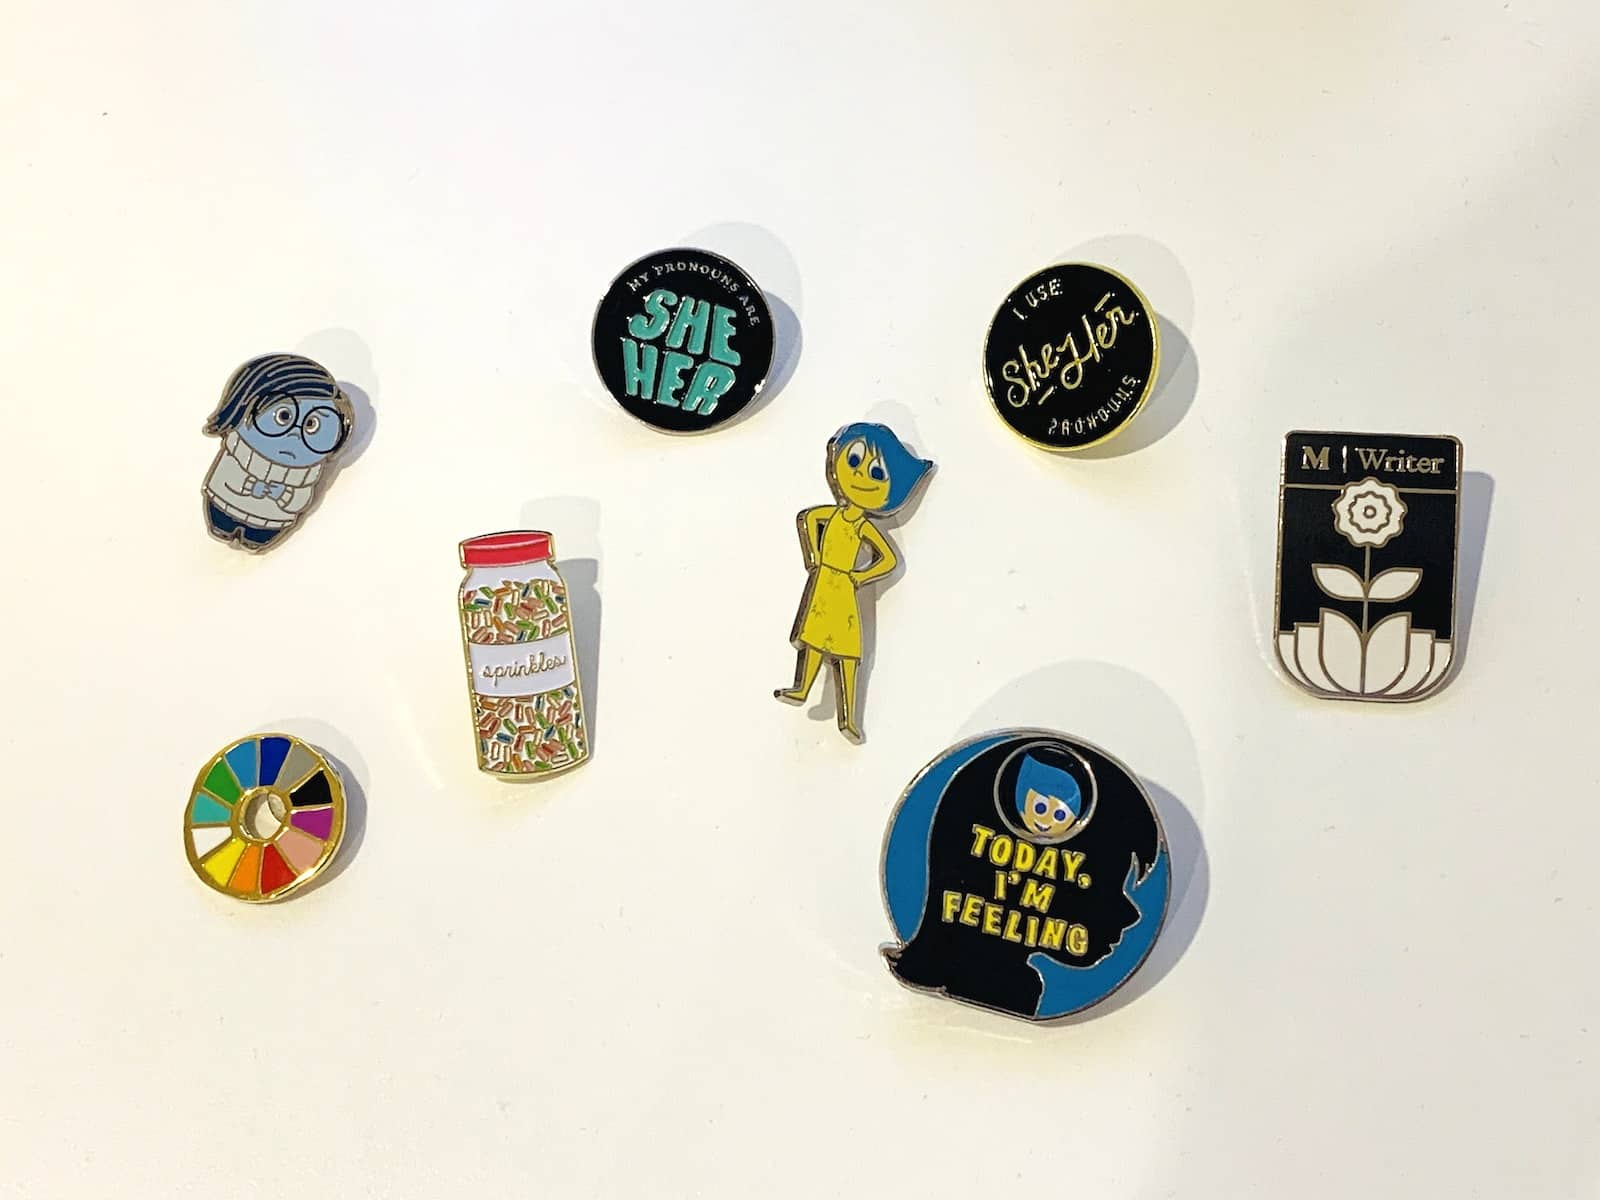 A handful of enamel pins on a flat white surface.